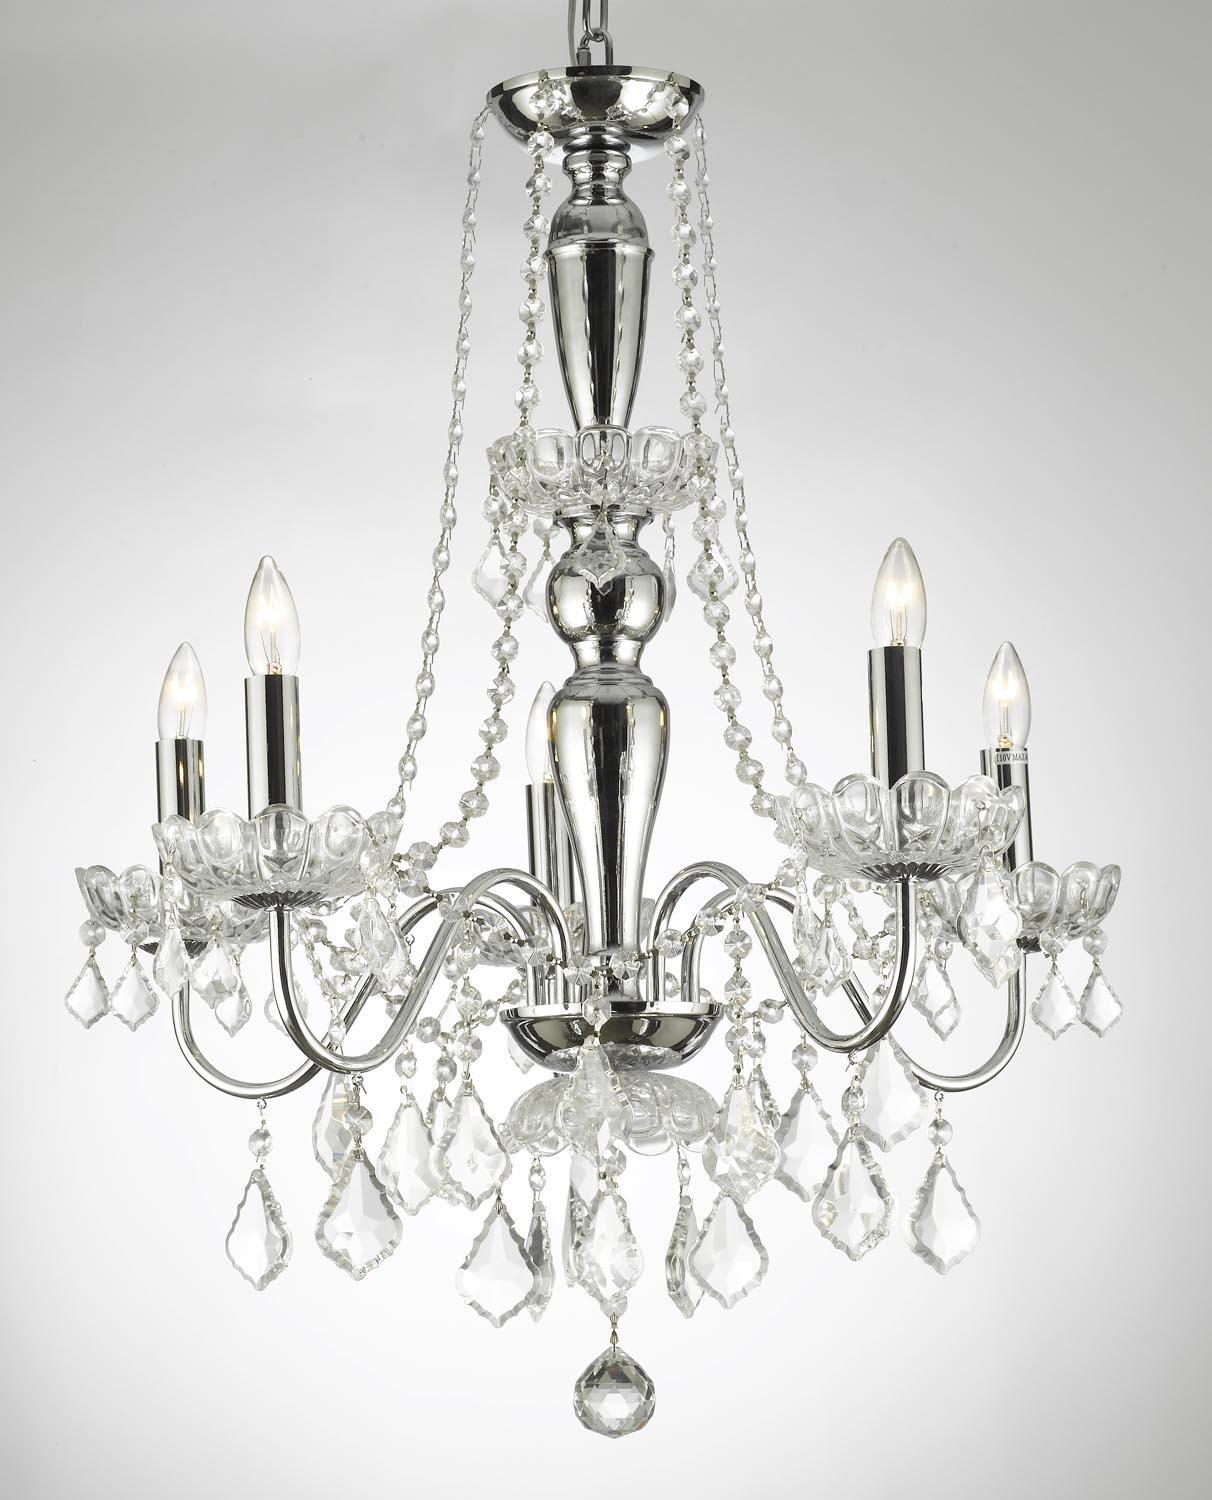 Elegant Crystal Chandelier With 5 Lights Pendant Lighting Fixture Light Lamp